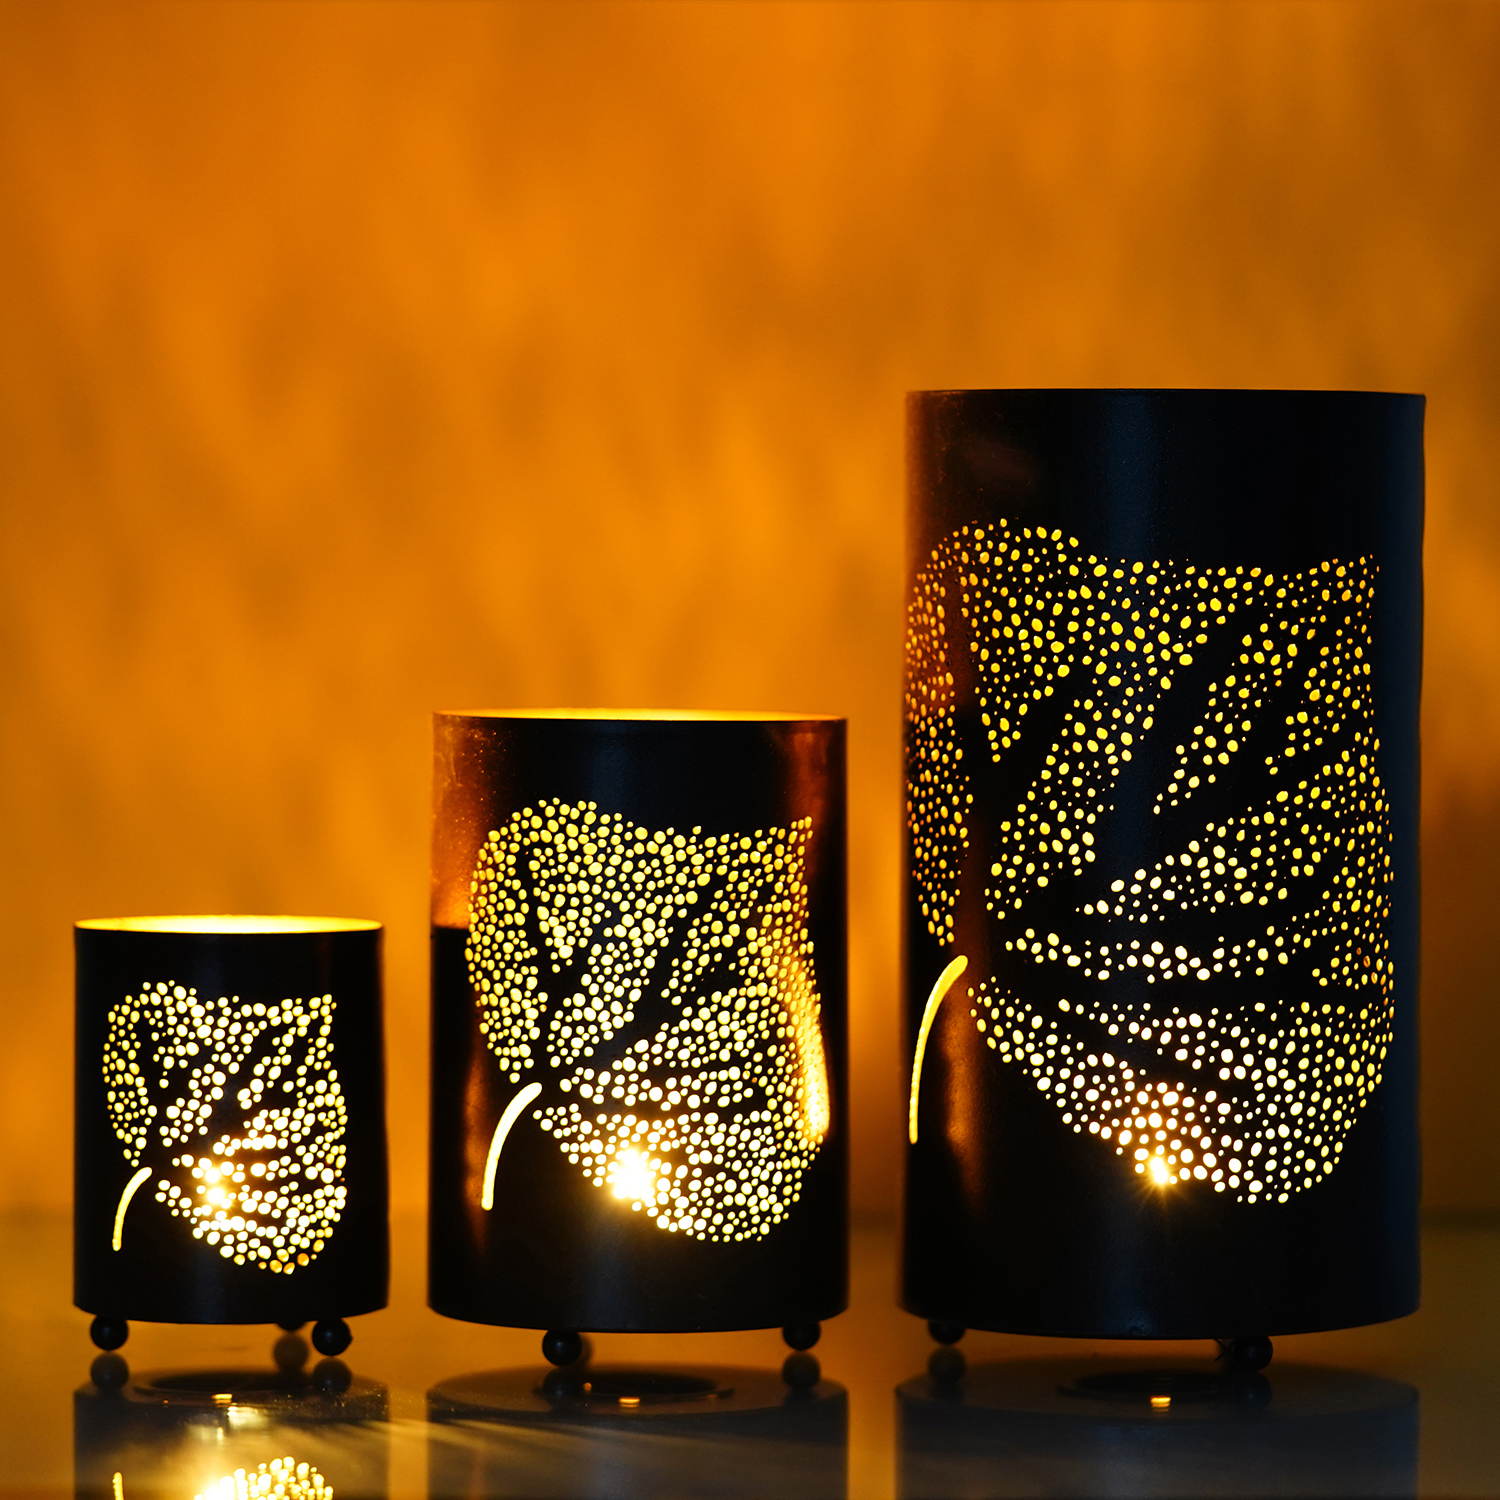 Set of 3 Decorative Mesh Design er Leafs Iron Tea Light Holder in Cylindrical shape Indian Home Decor